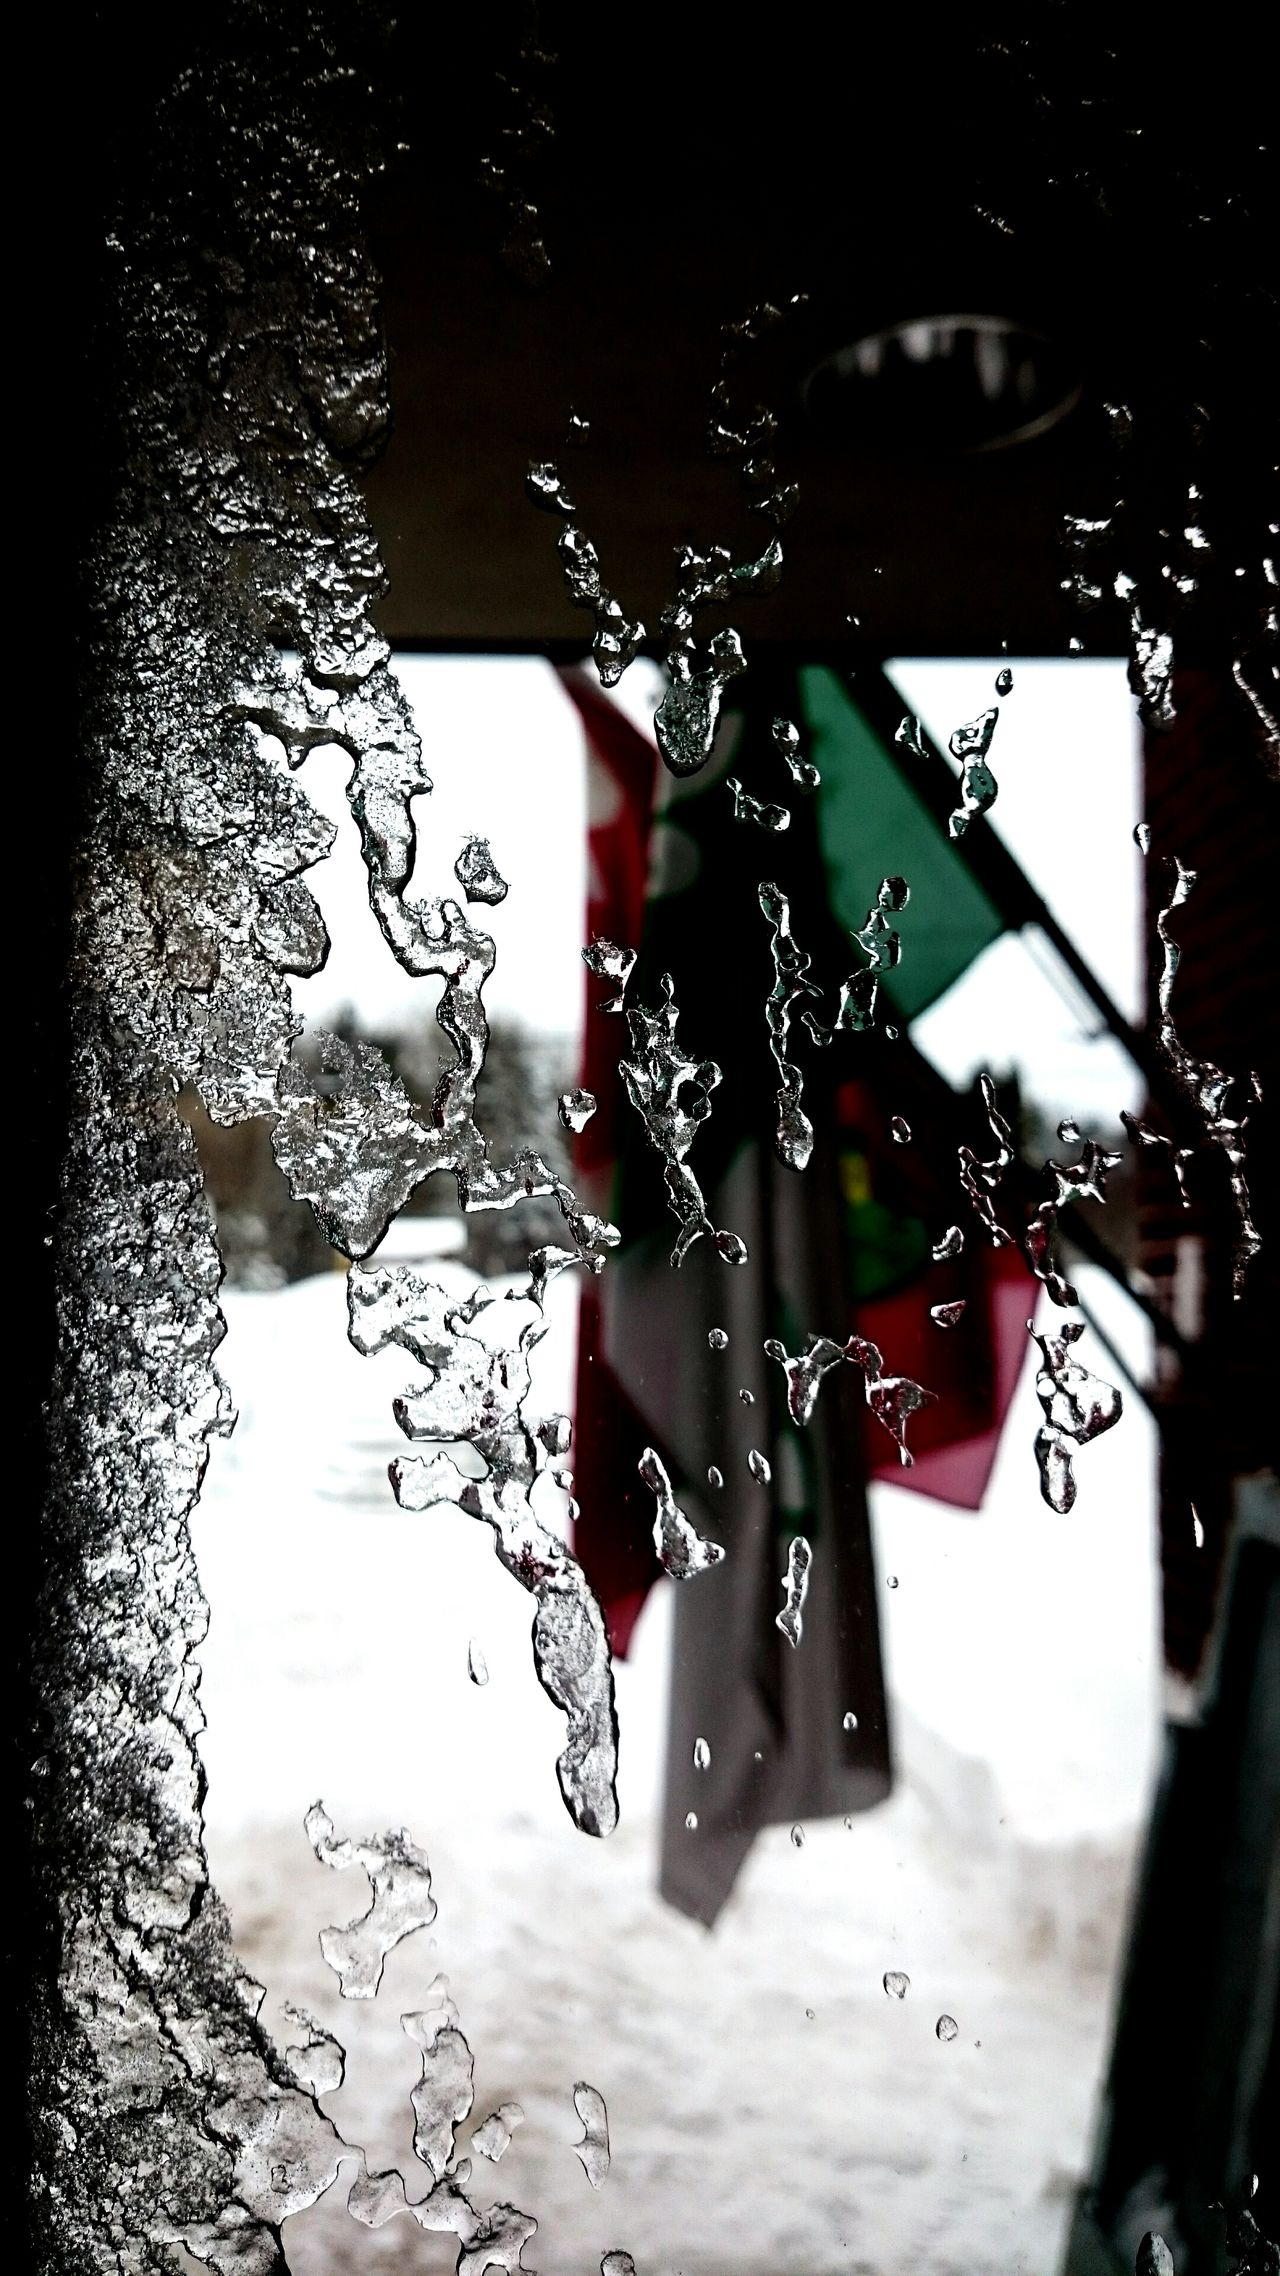 ...icy window (the flags)... Icy Window Flags Flags In The Wind  Freezing Cold Freezing ❄ Sony Xperia From A Window The World Outside Wintertime Beautiful World Look Outside ❄ Canadian Flag